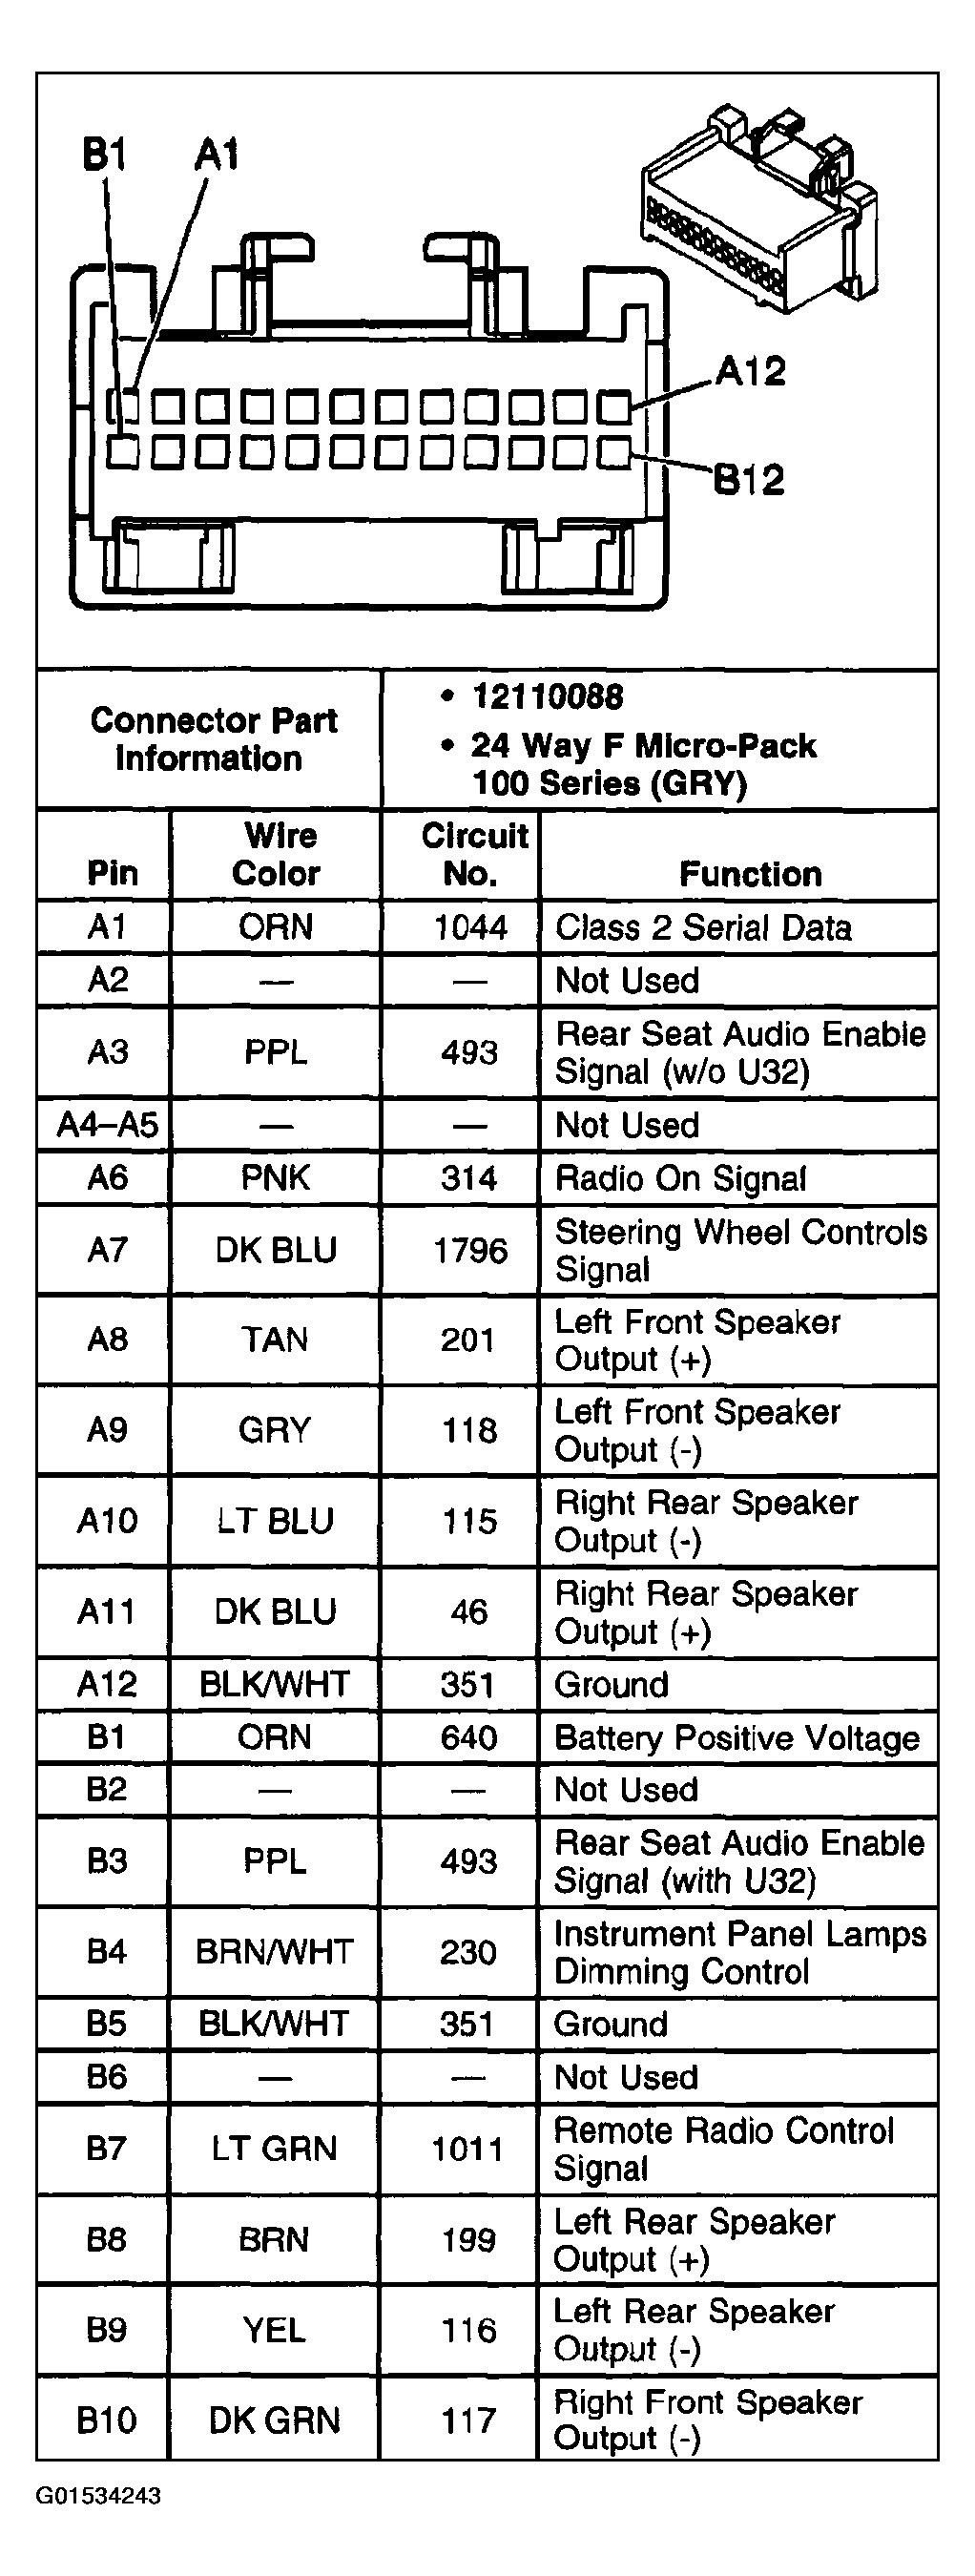 2014 Ford Focus Stereo Wiring Harness 2003 Pontiac Aztek Radio Wiring Diagram Wiring Diagram Schematics